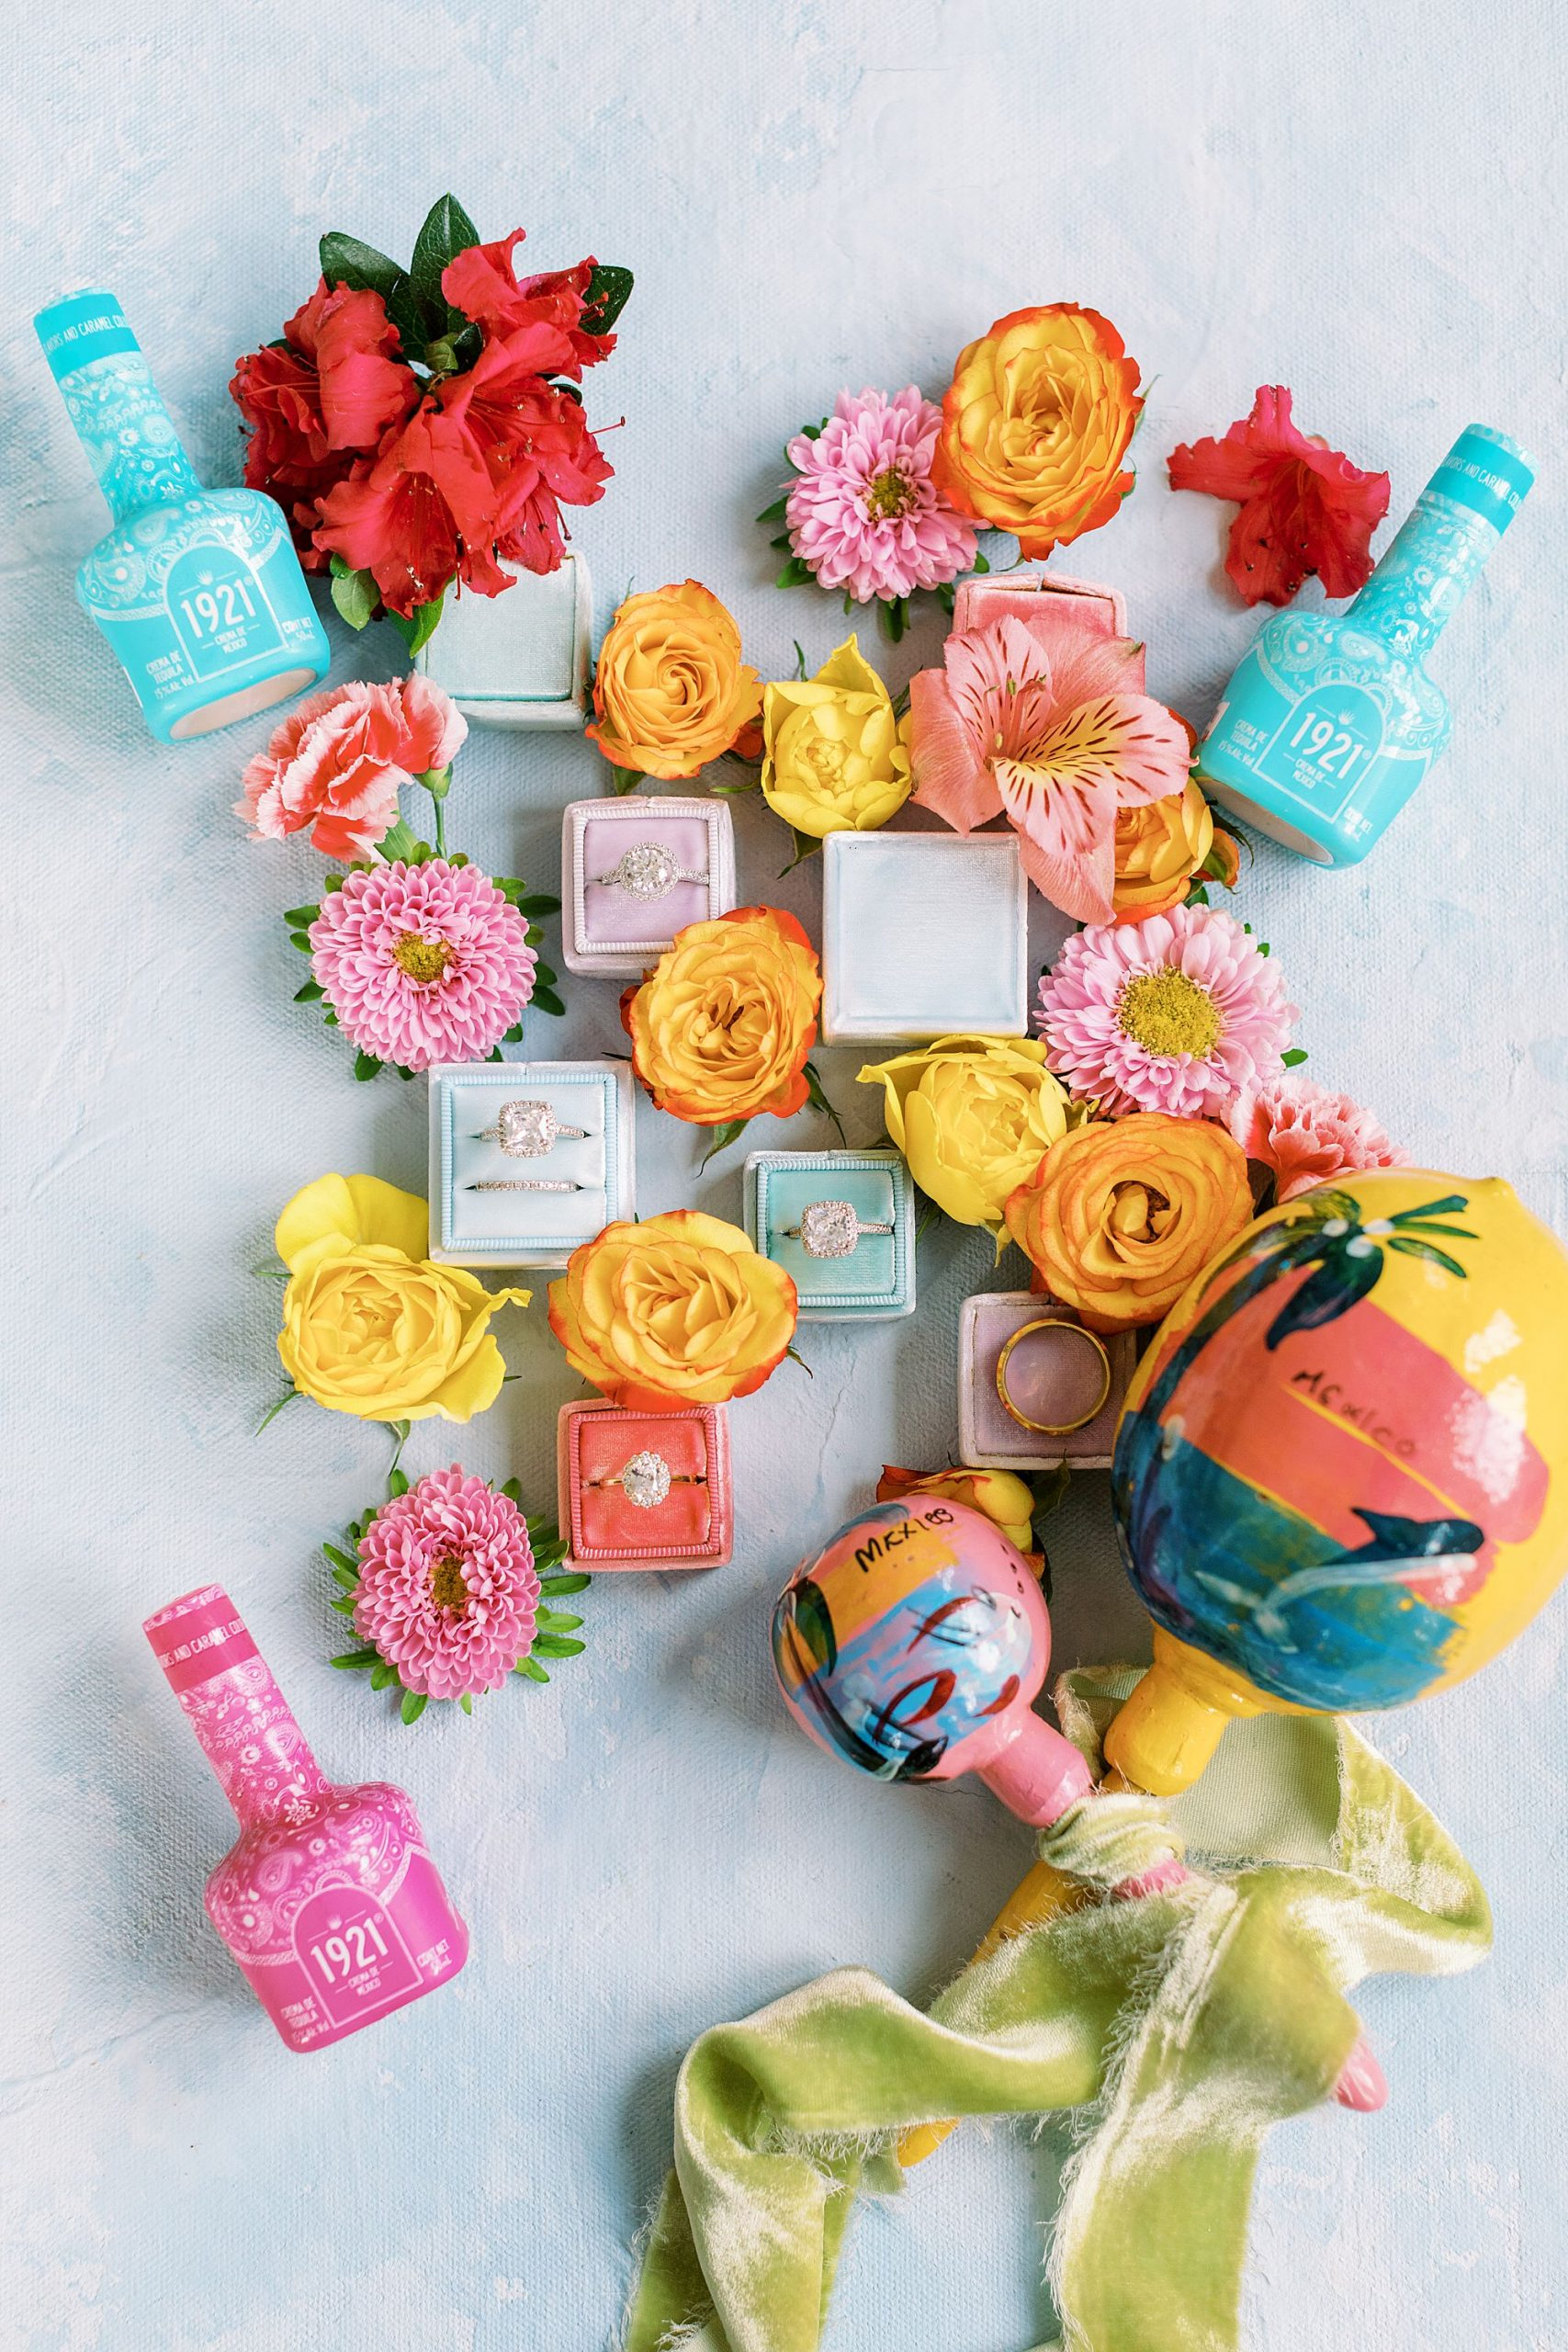 Cinco De Mayo Inspiration for Your FIesta - Party Crush Studio and Ashley Baumgartner_0060.jpg